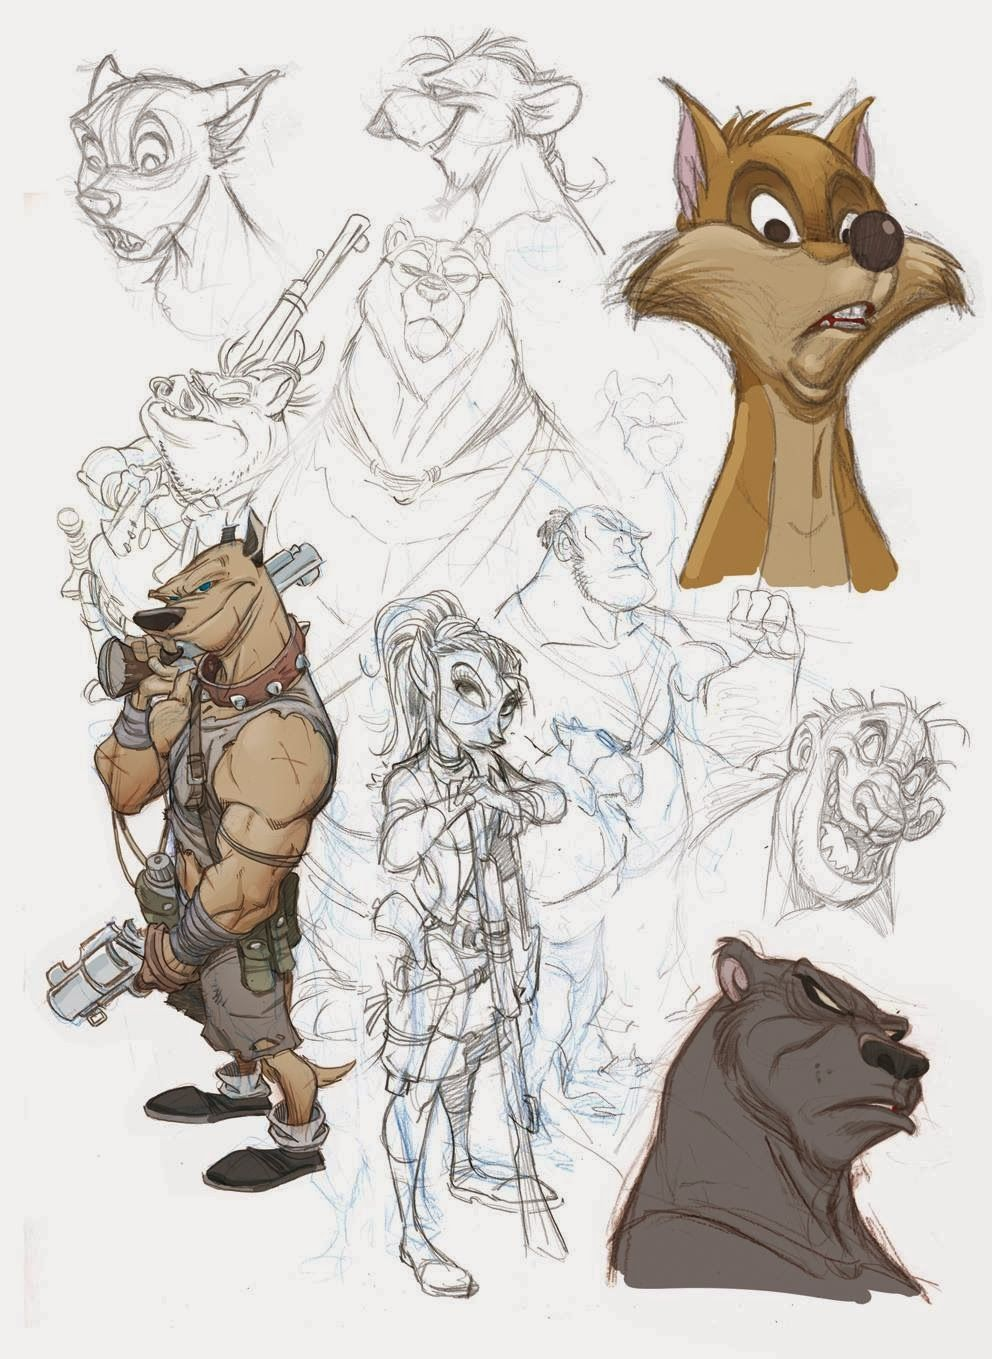 By Oscar Martn 2d Characters And Creatures In 2018 Pinterest Exploded View Diagram Randal Birkey Illustration